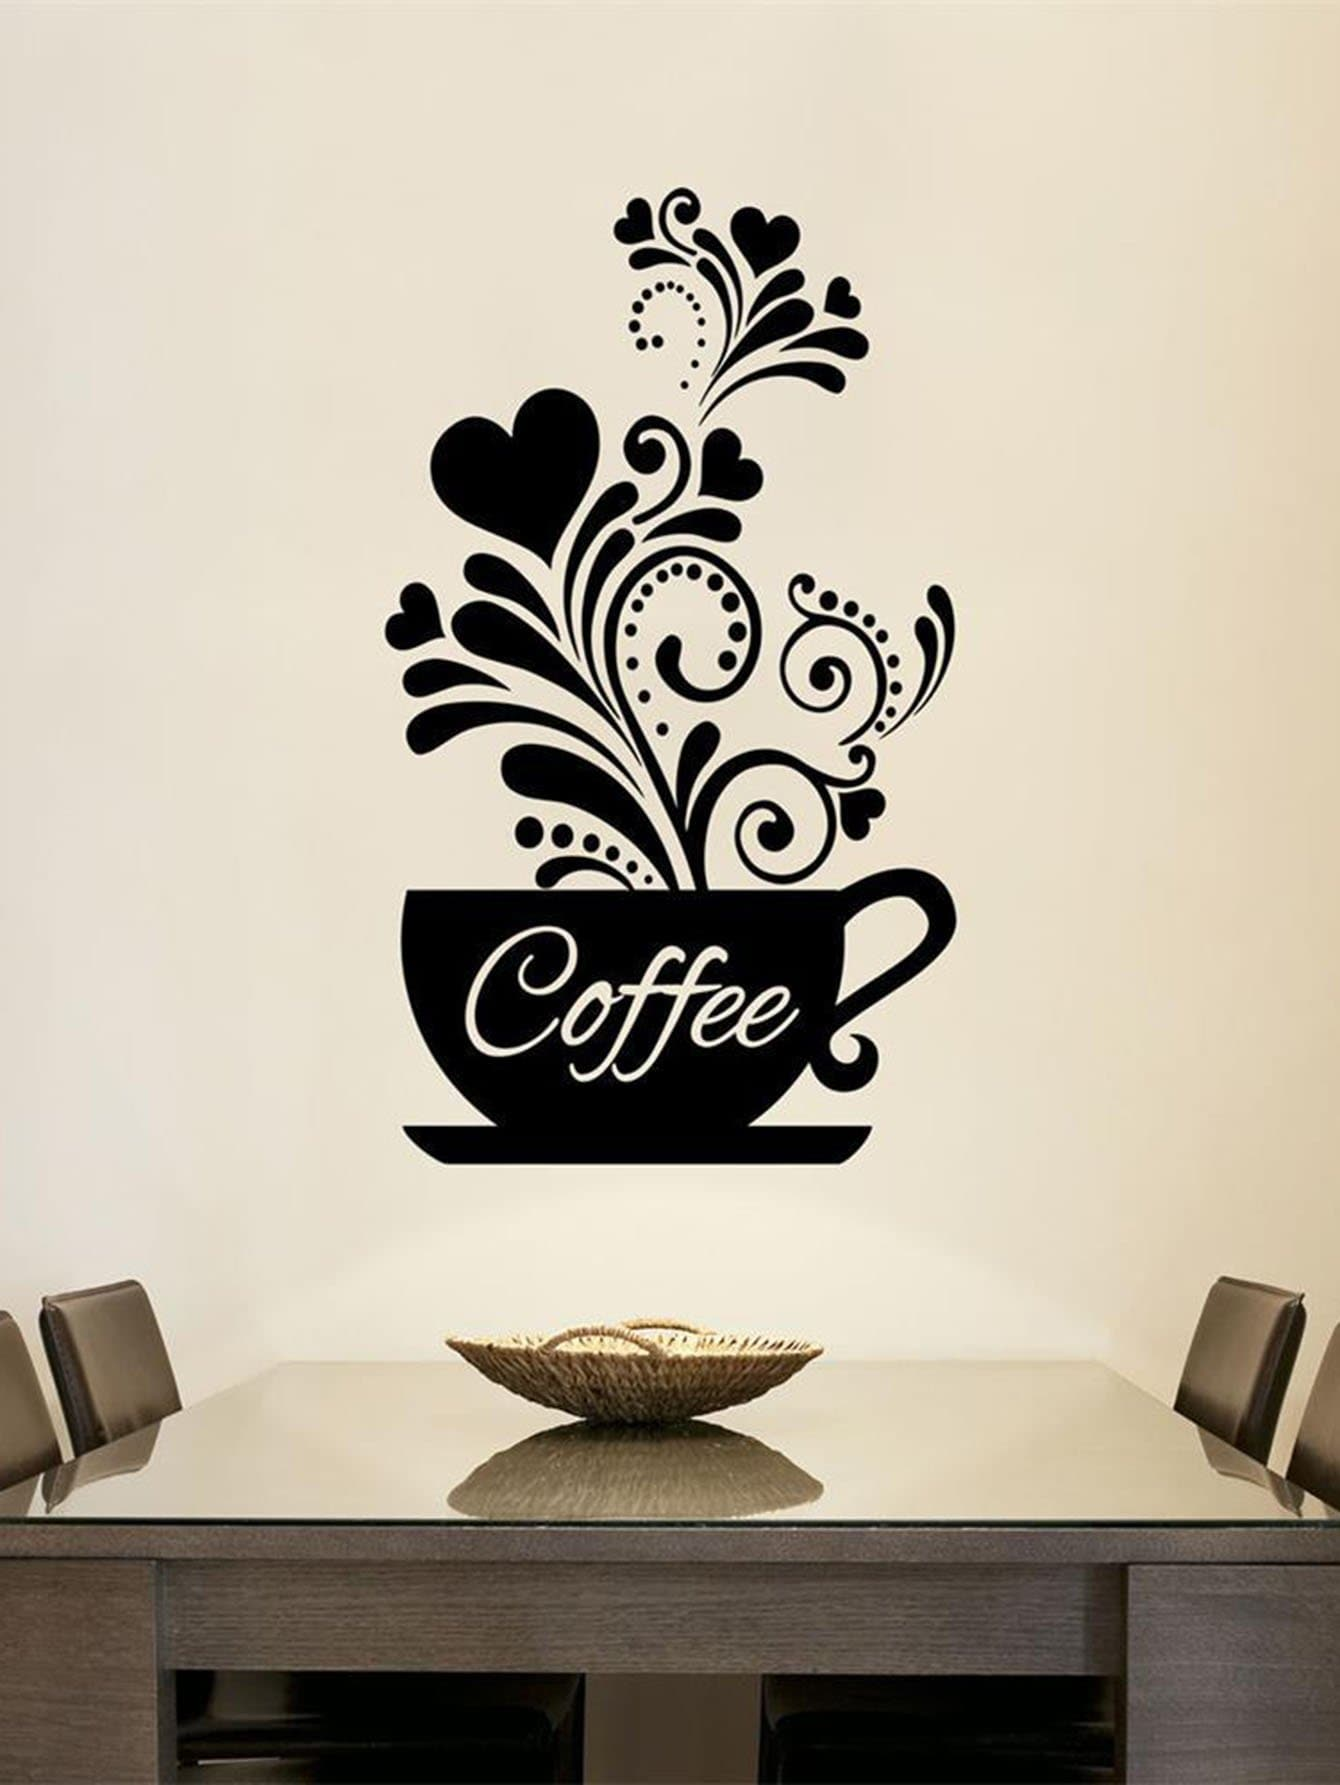 Coffee Garland Wall Decal family wall quote removable wall stickers home decal art mural